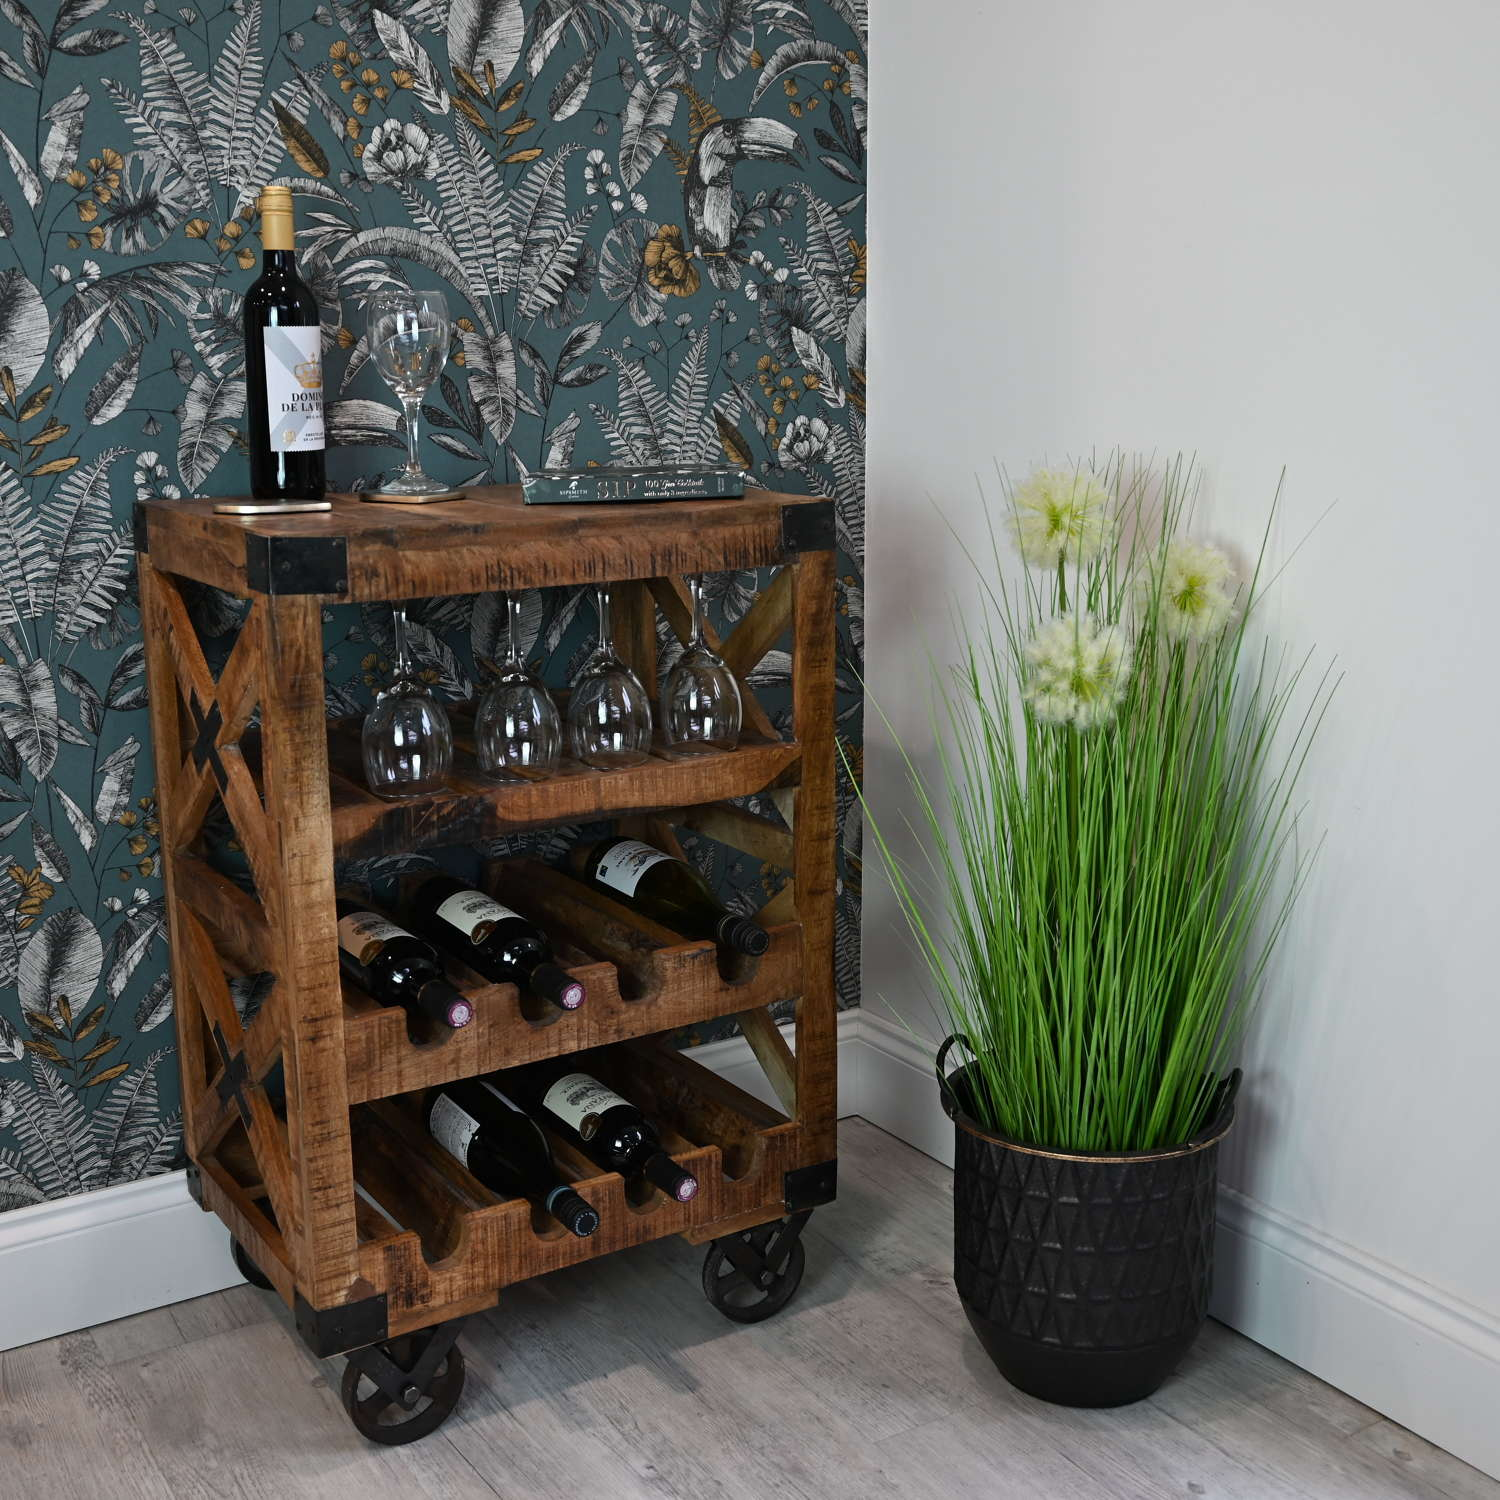 Rustic industrial wine trolley with cast iron wheels